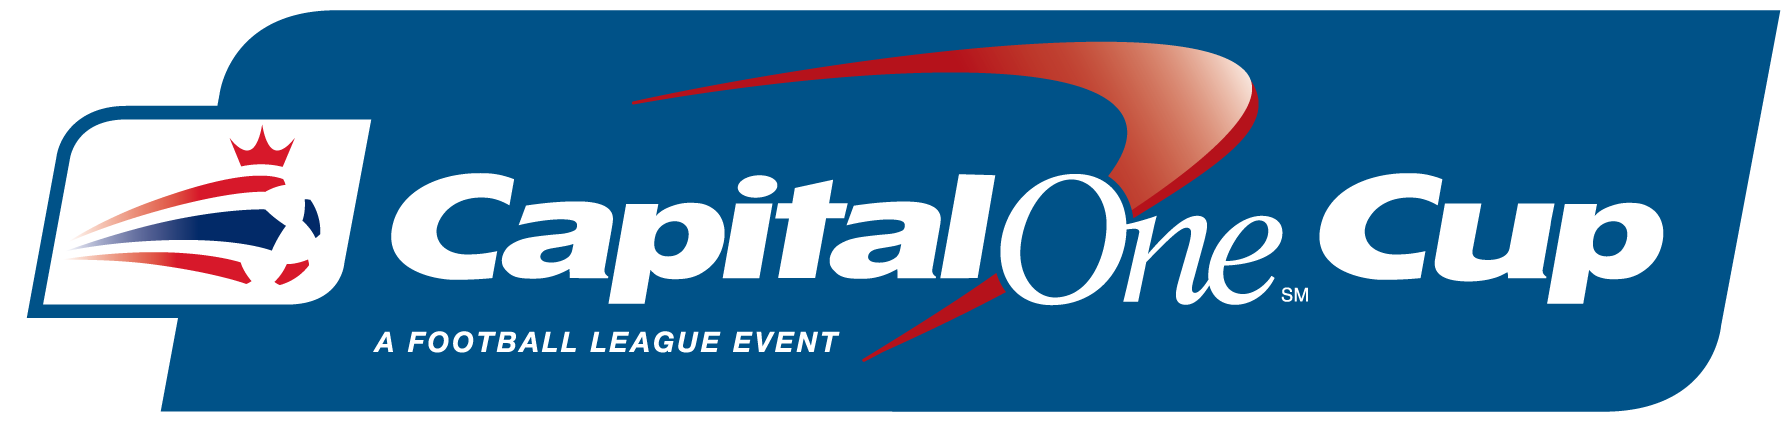 Inghilterra Capital One